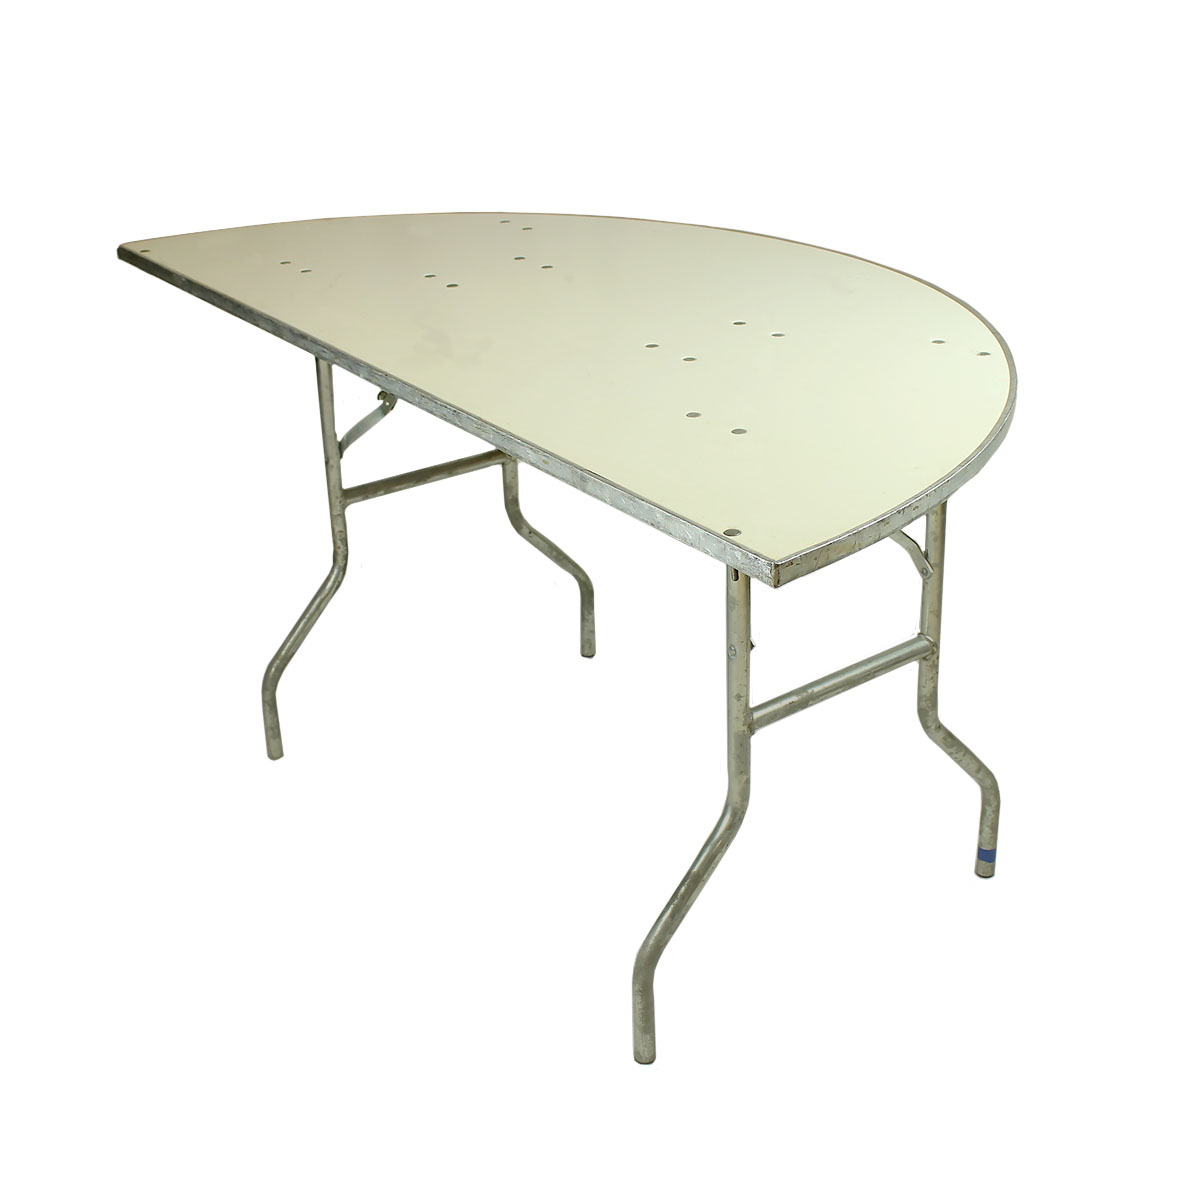 "Table Half 60"" Round White Formica Topped"